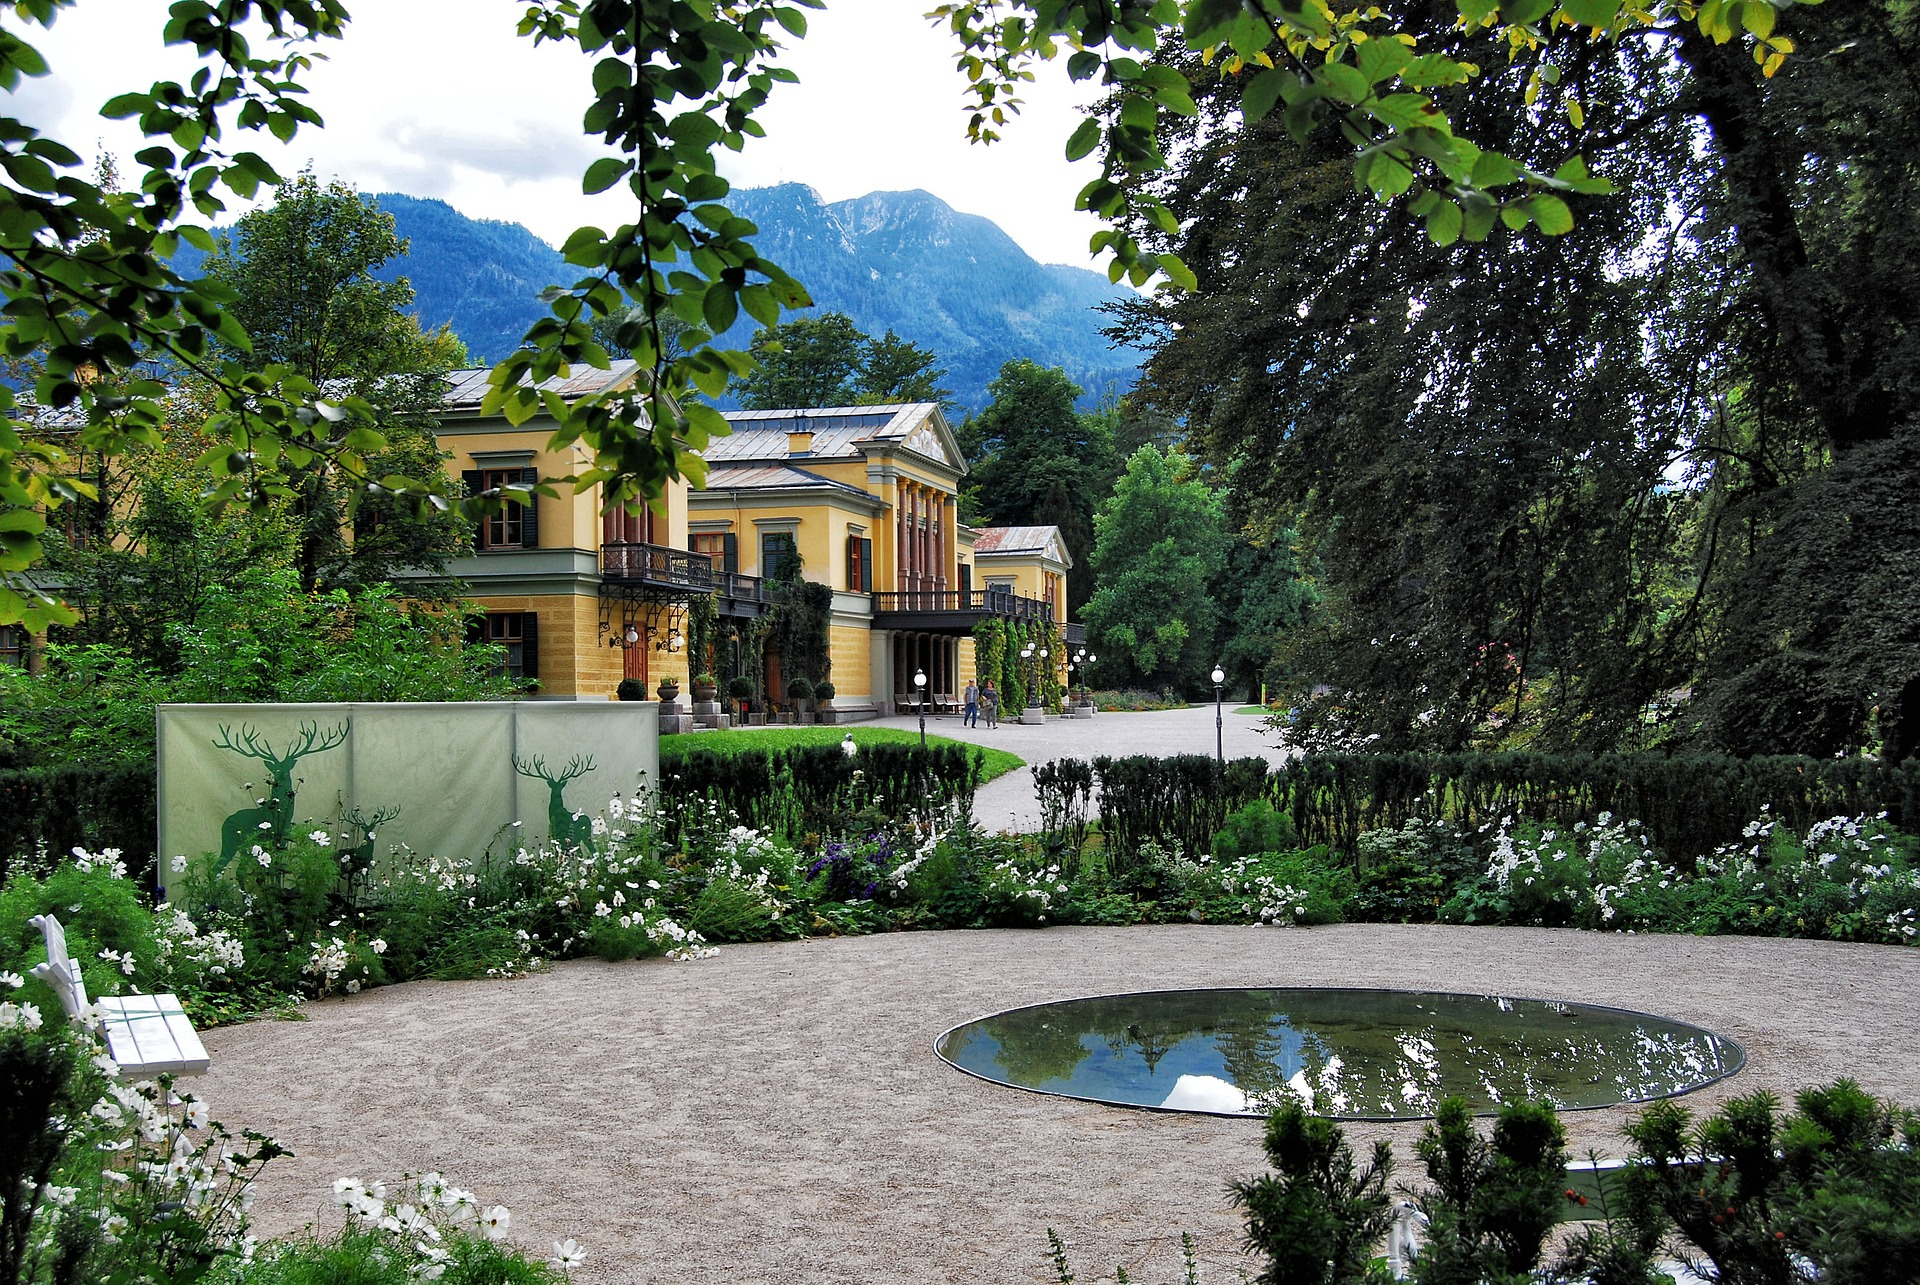 bad-ischl-2658851_1920